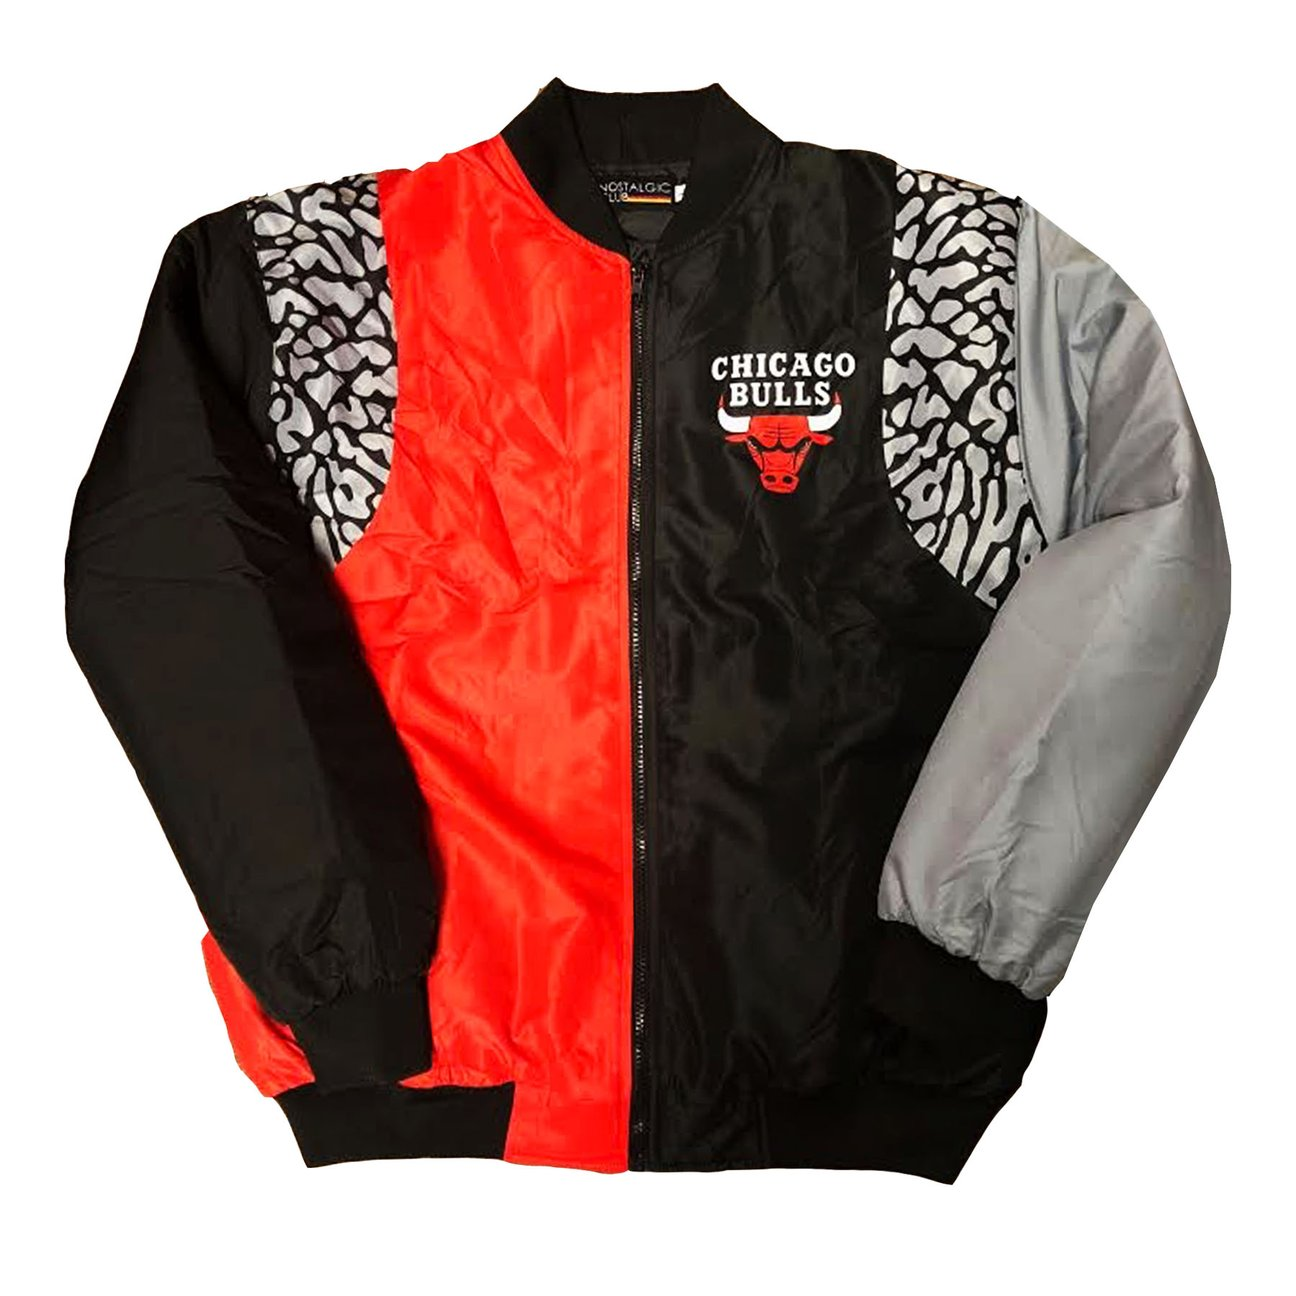 5476f42e7632e1 Nostalgic Club Chicago Bulls Cement Jacket · ALL THA DRIP · Online ...